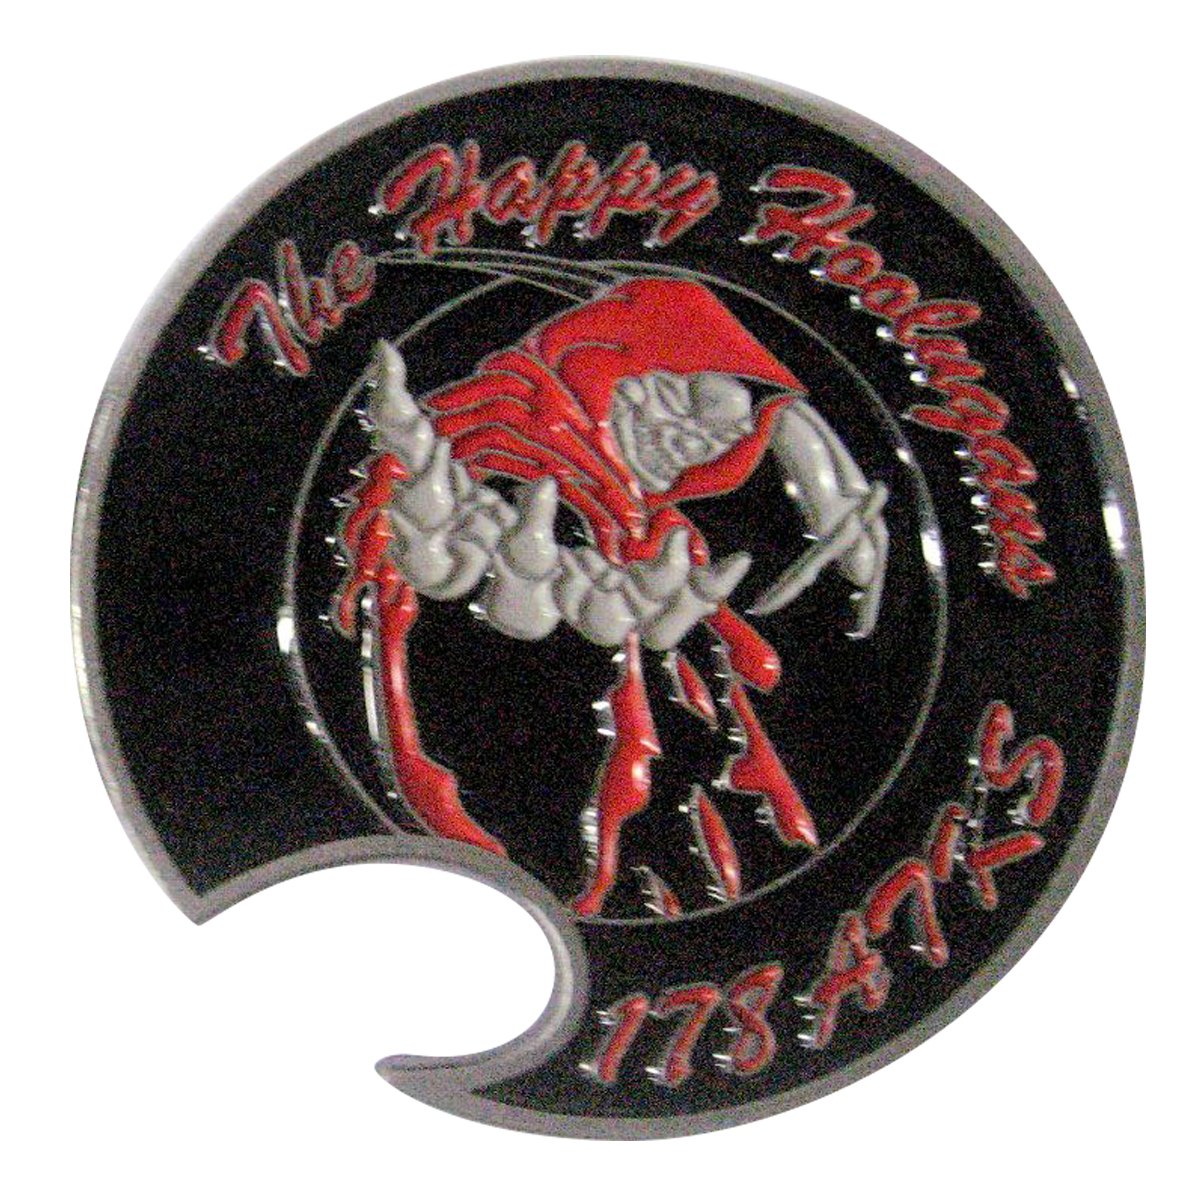 178 ATKS Reaper Bottle Opener Coin Back SAMPLE